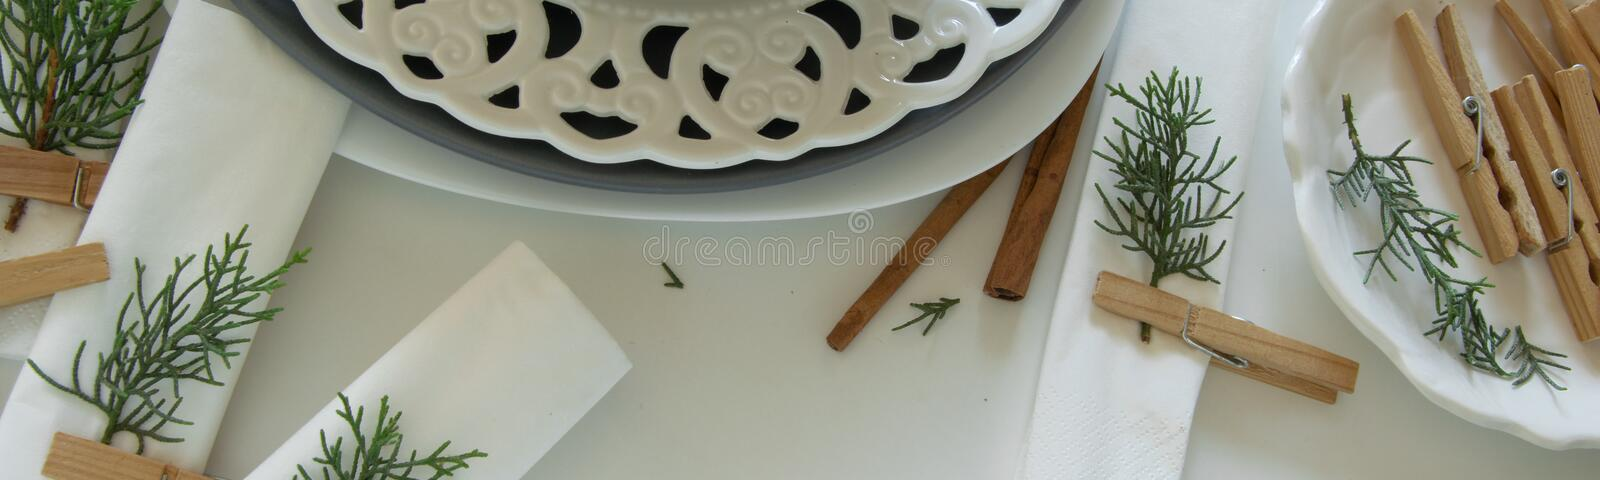 Preparations about arranging the table for winter holidays. Winter decoration stock photo